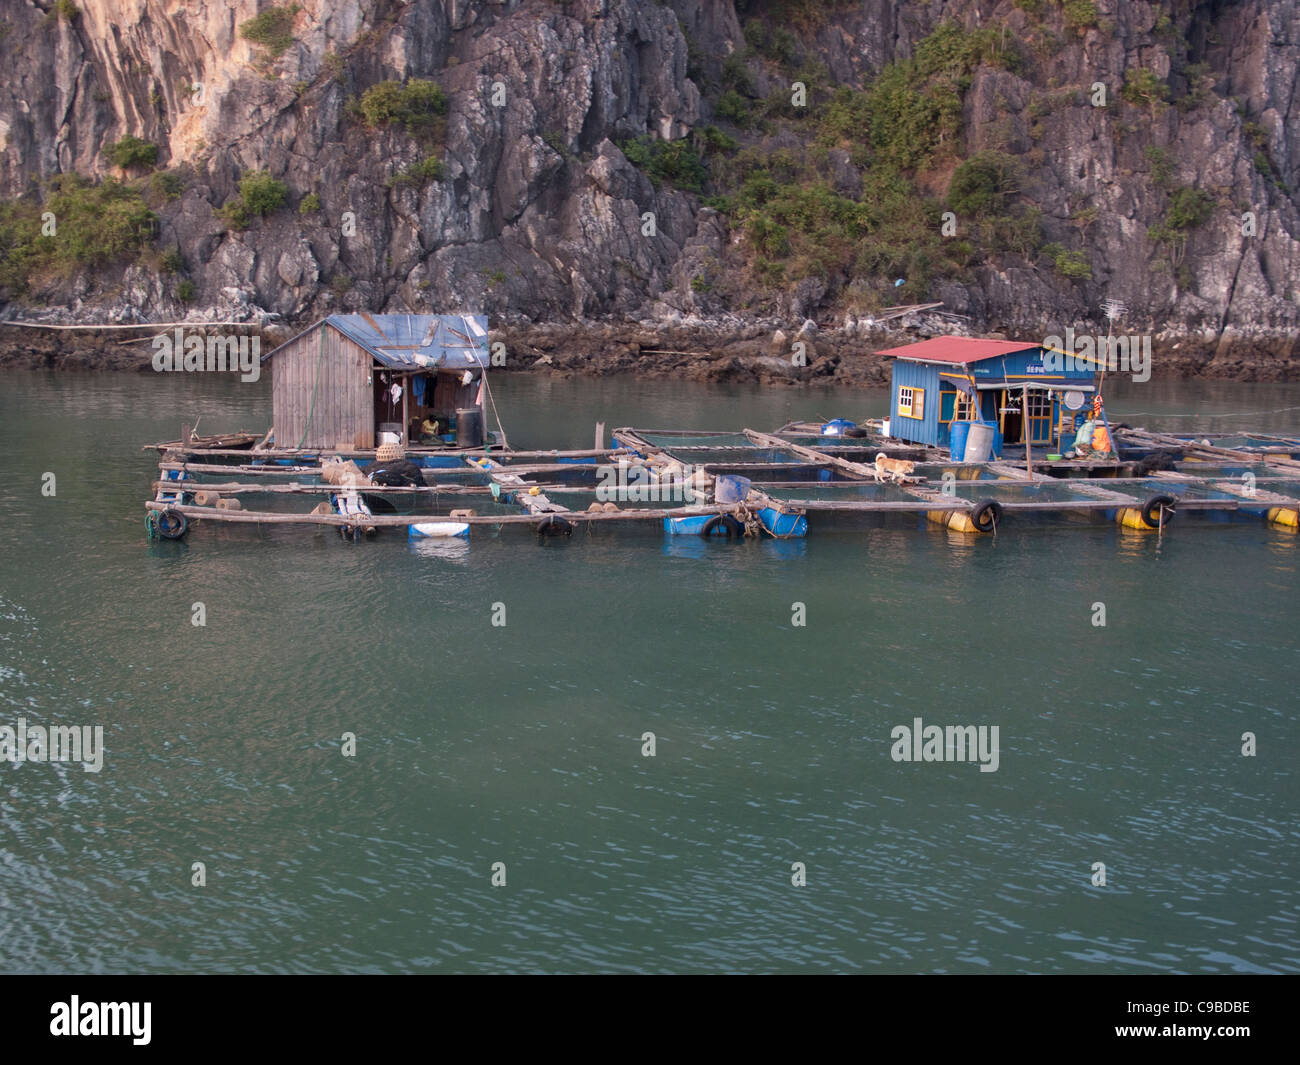 Fish farms at the floating Village in Halong Bay in the South China Sea, Vietnam - Stock Image